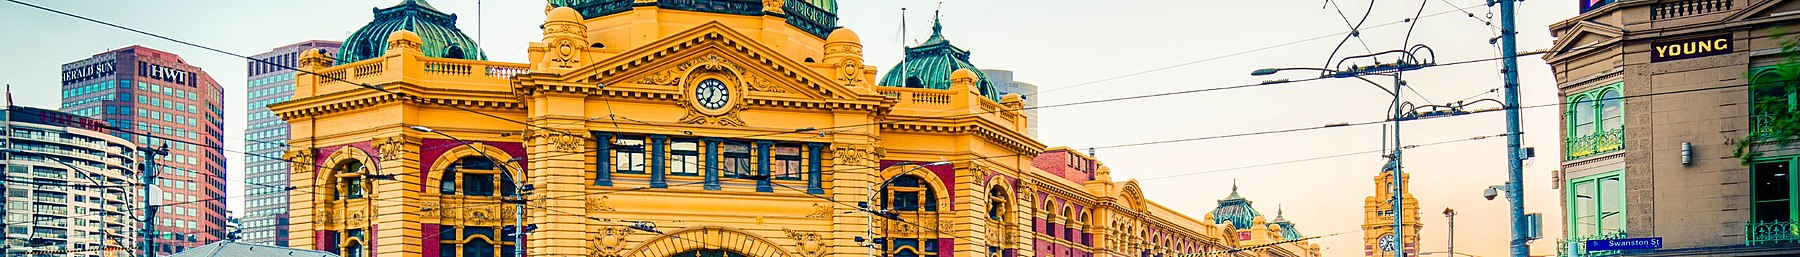 Flinders Street Station at the Swanston and Flinders intersection in the city